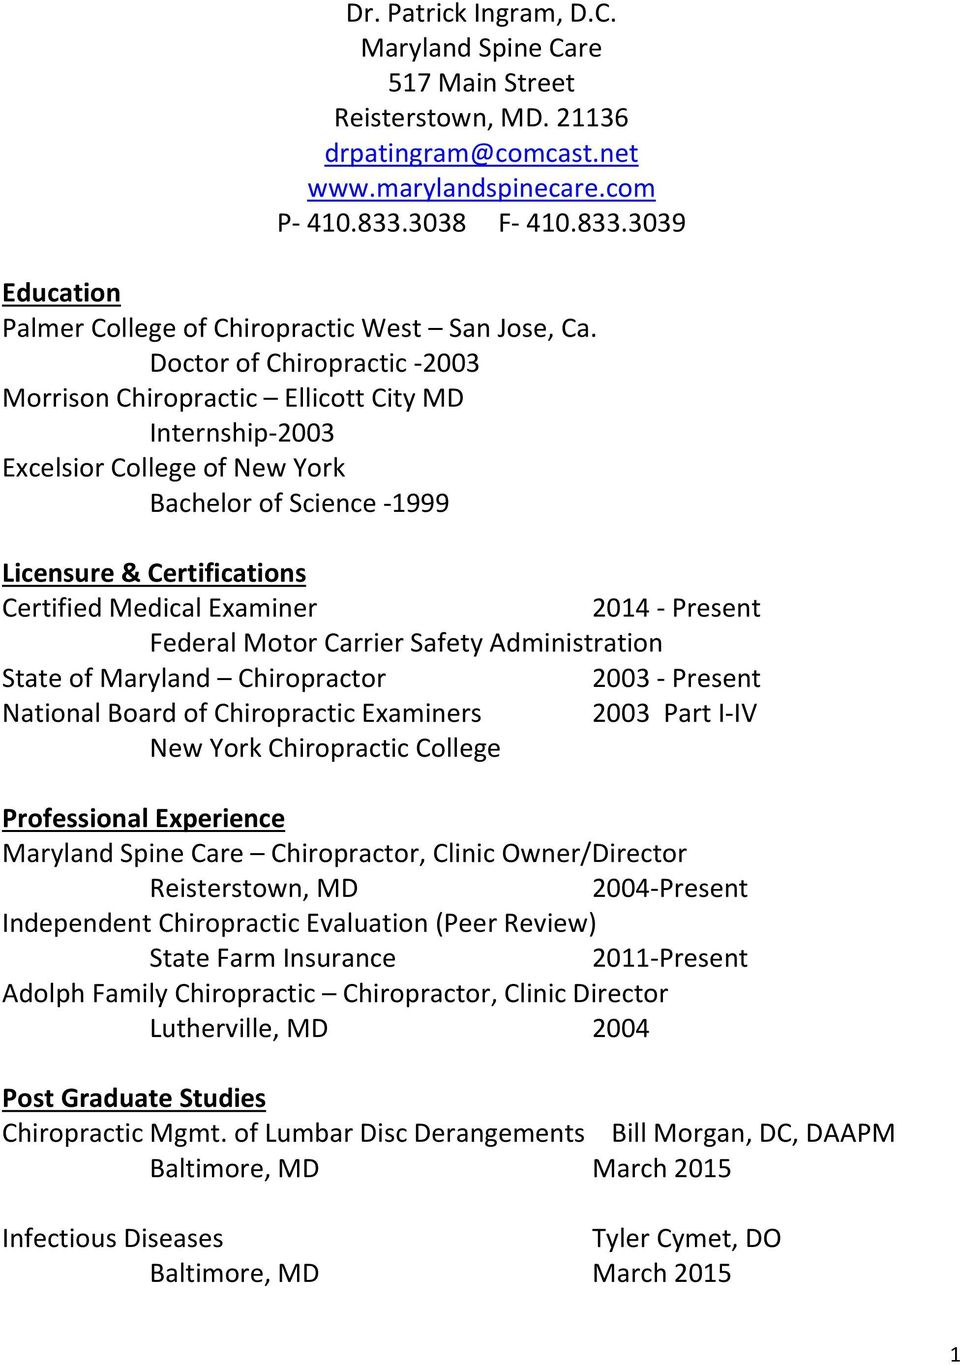 Doctor of Chiropractic -2003 Morrison Chiropractic Ellicott City MD Internship-2003 Excelsior College of New York Bachelor of Science -1999 Licensure & Certifications Certified Medical Examiner 2014